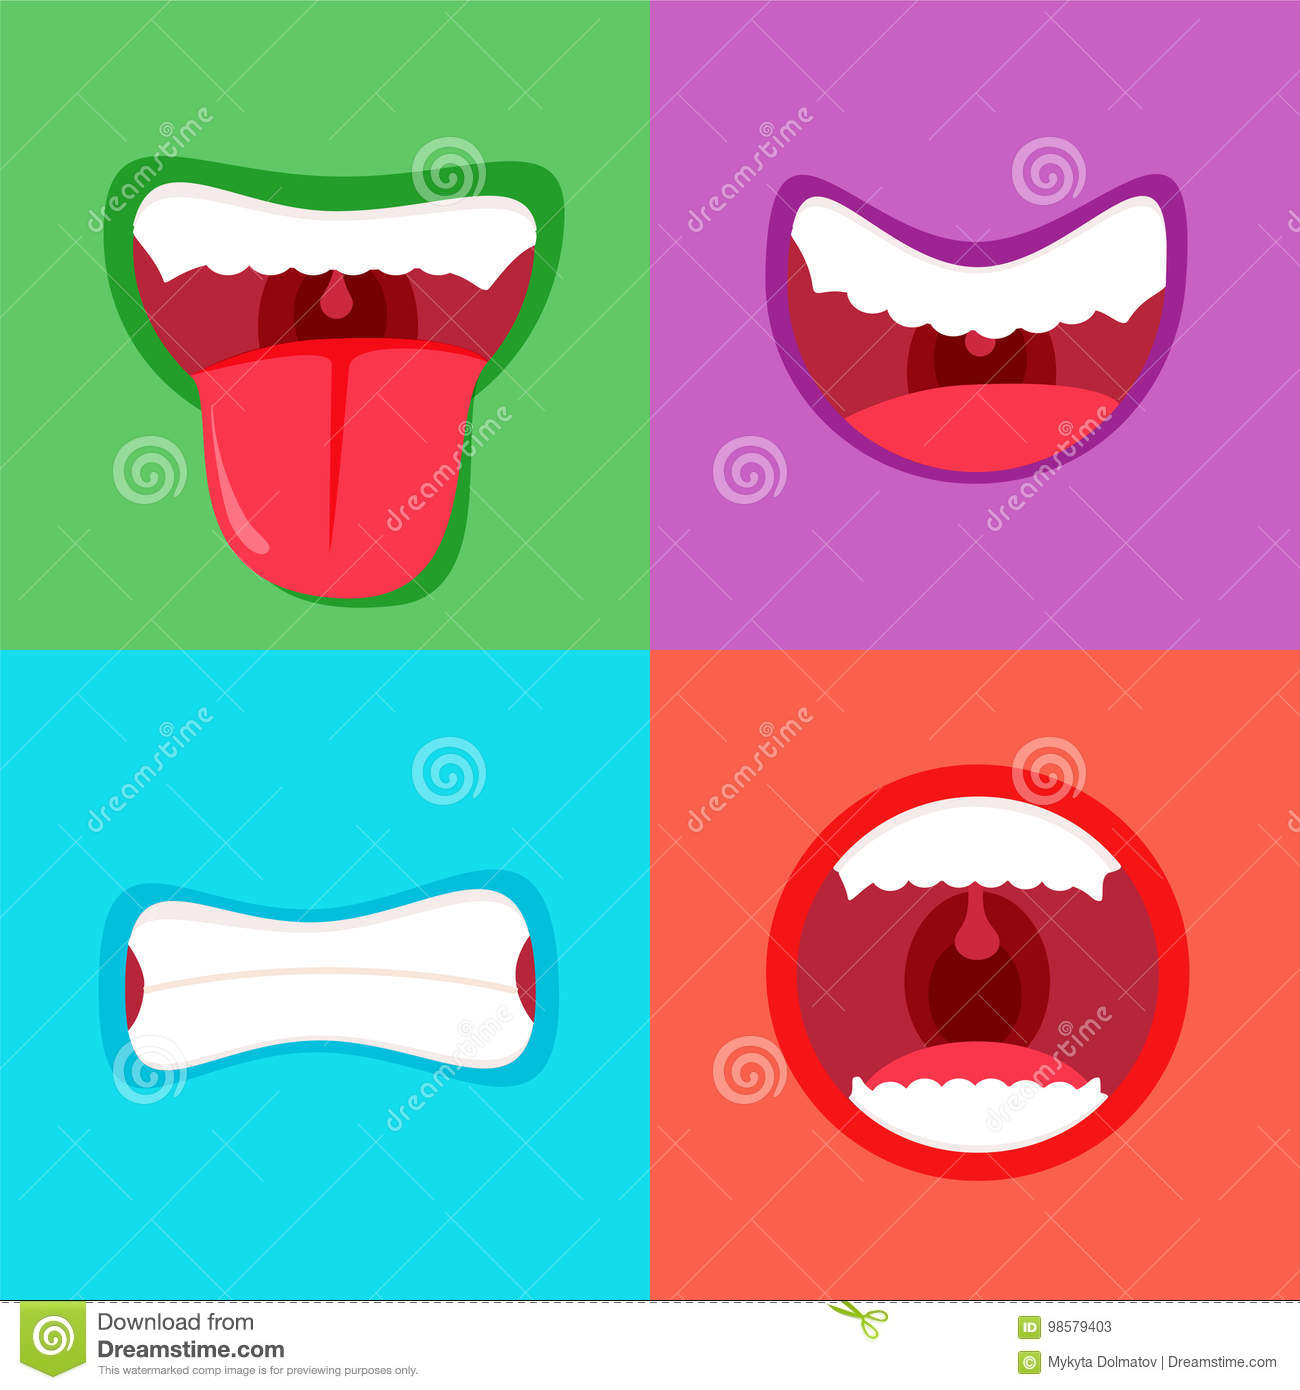 funny cartoon monster mouth sticking out tongue simple and cute